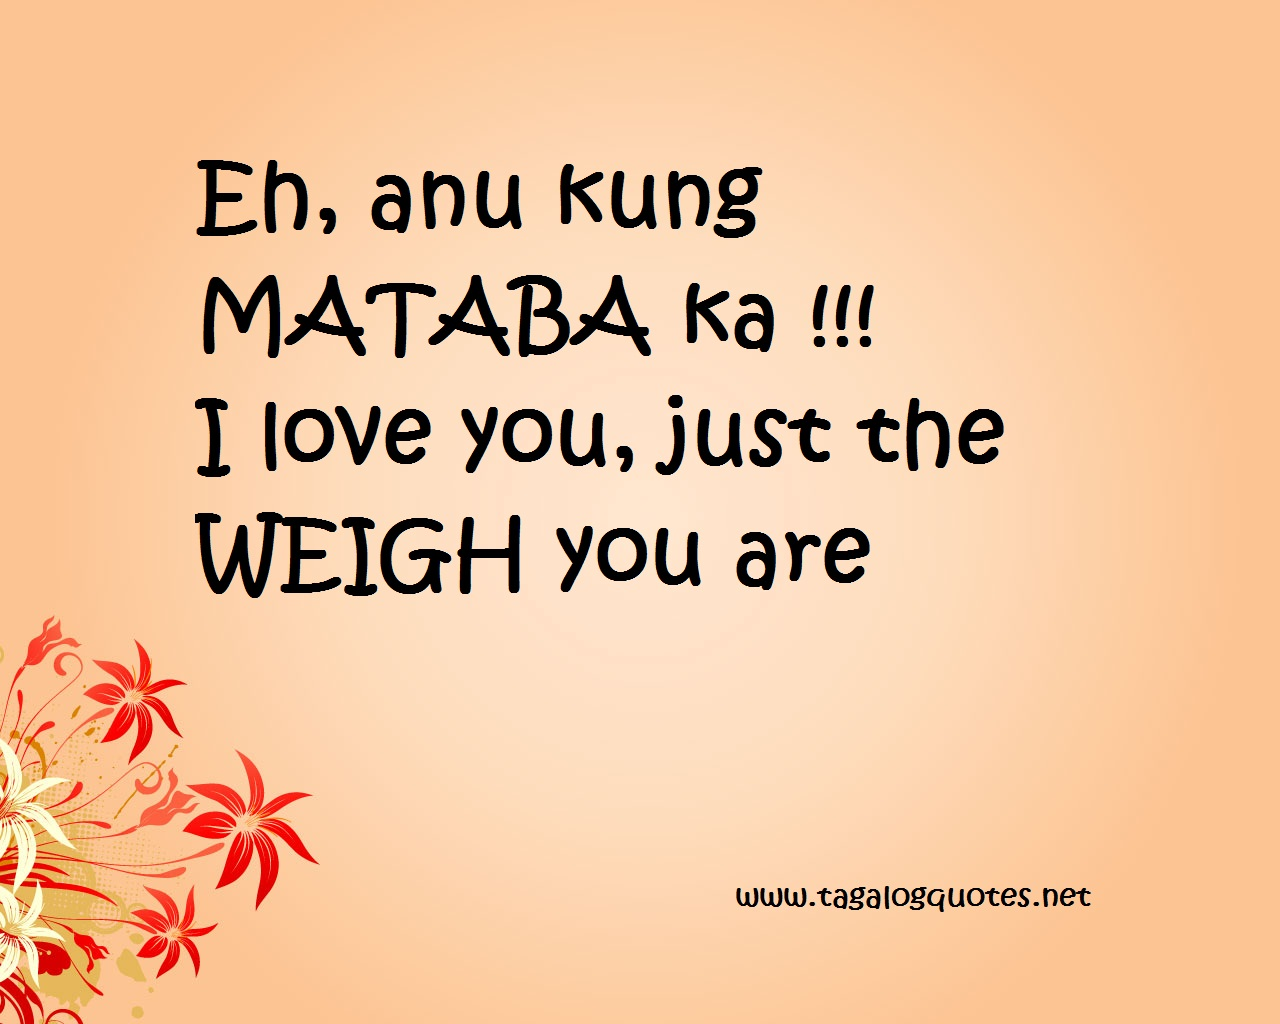 Love Quotes For Him Tagalog Pick Up Lines : Tagalog Love Quotes